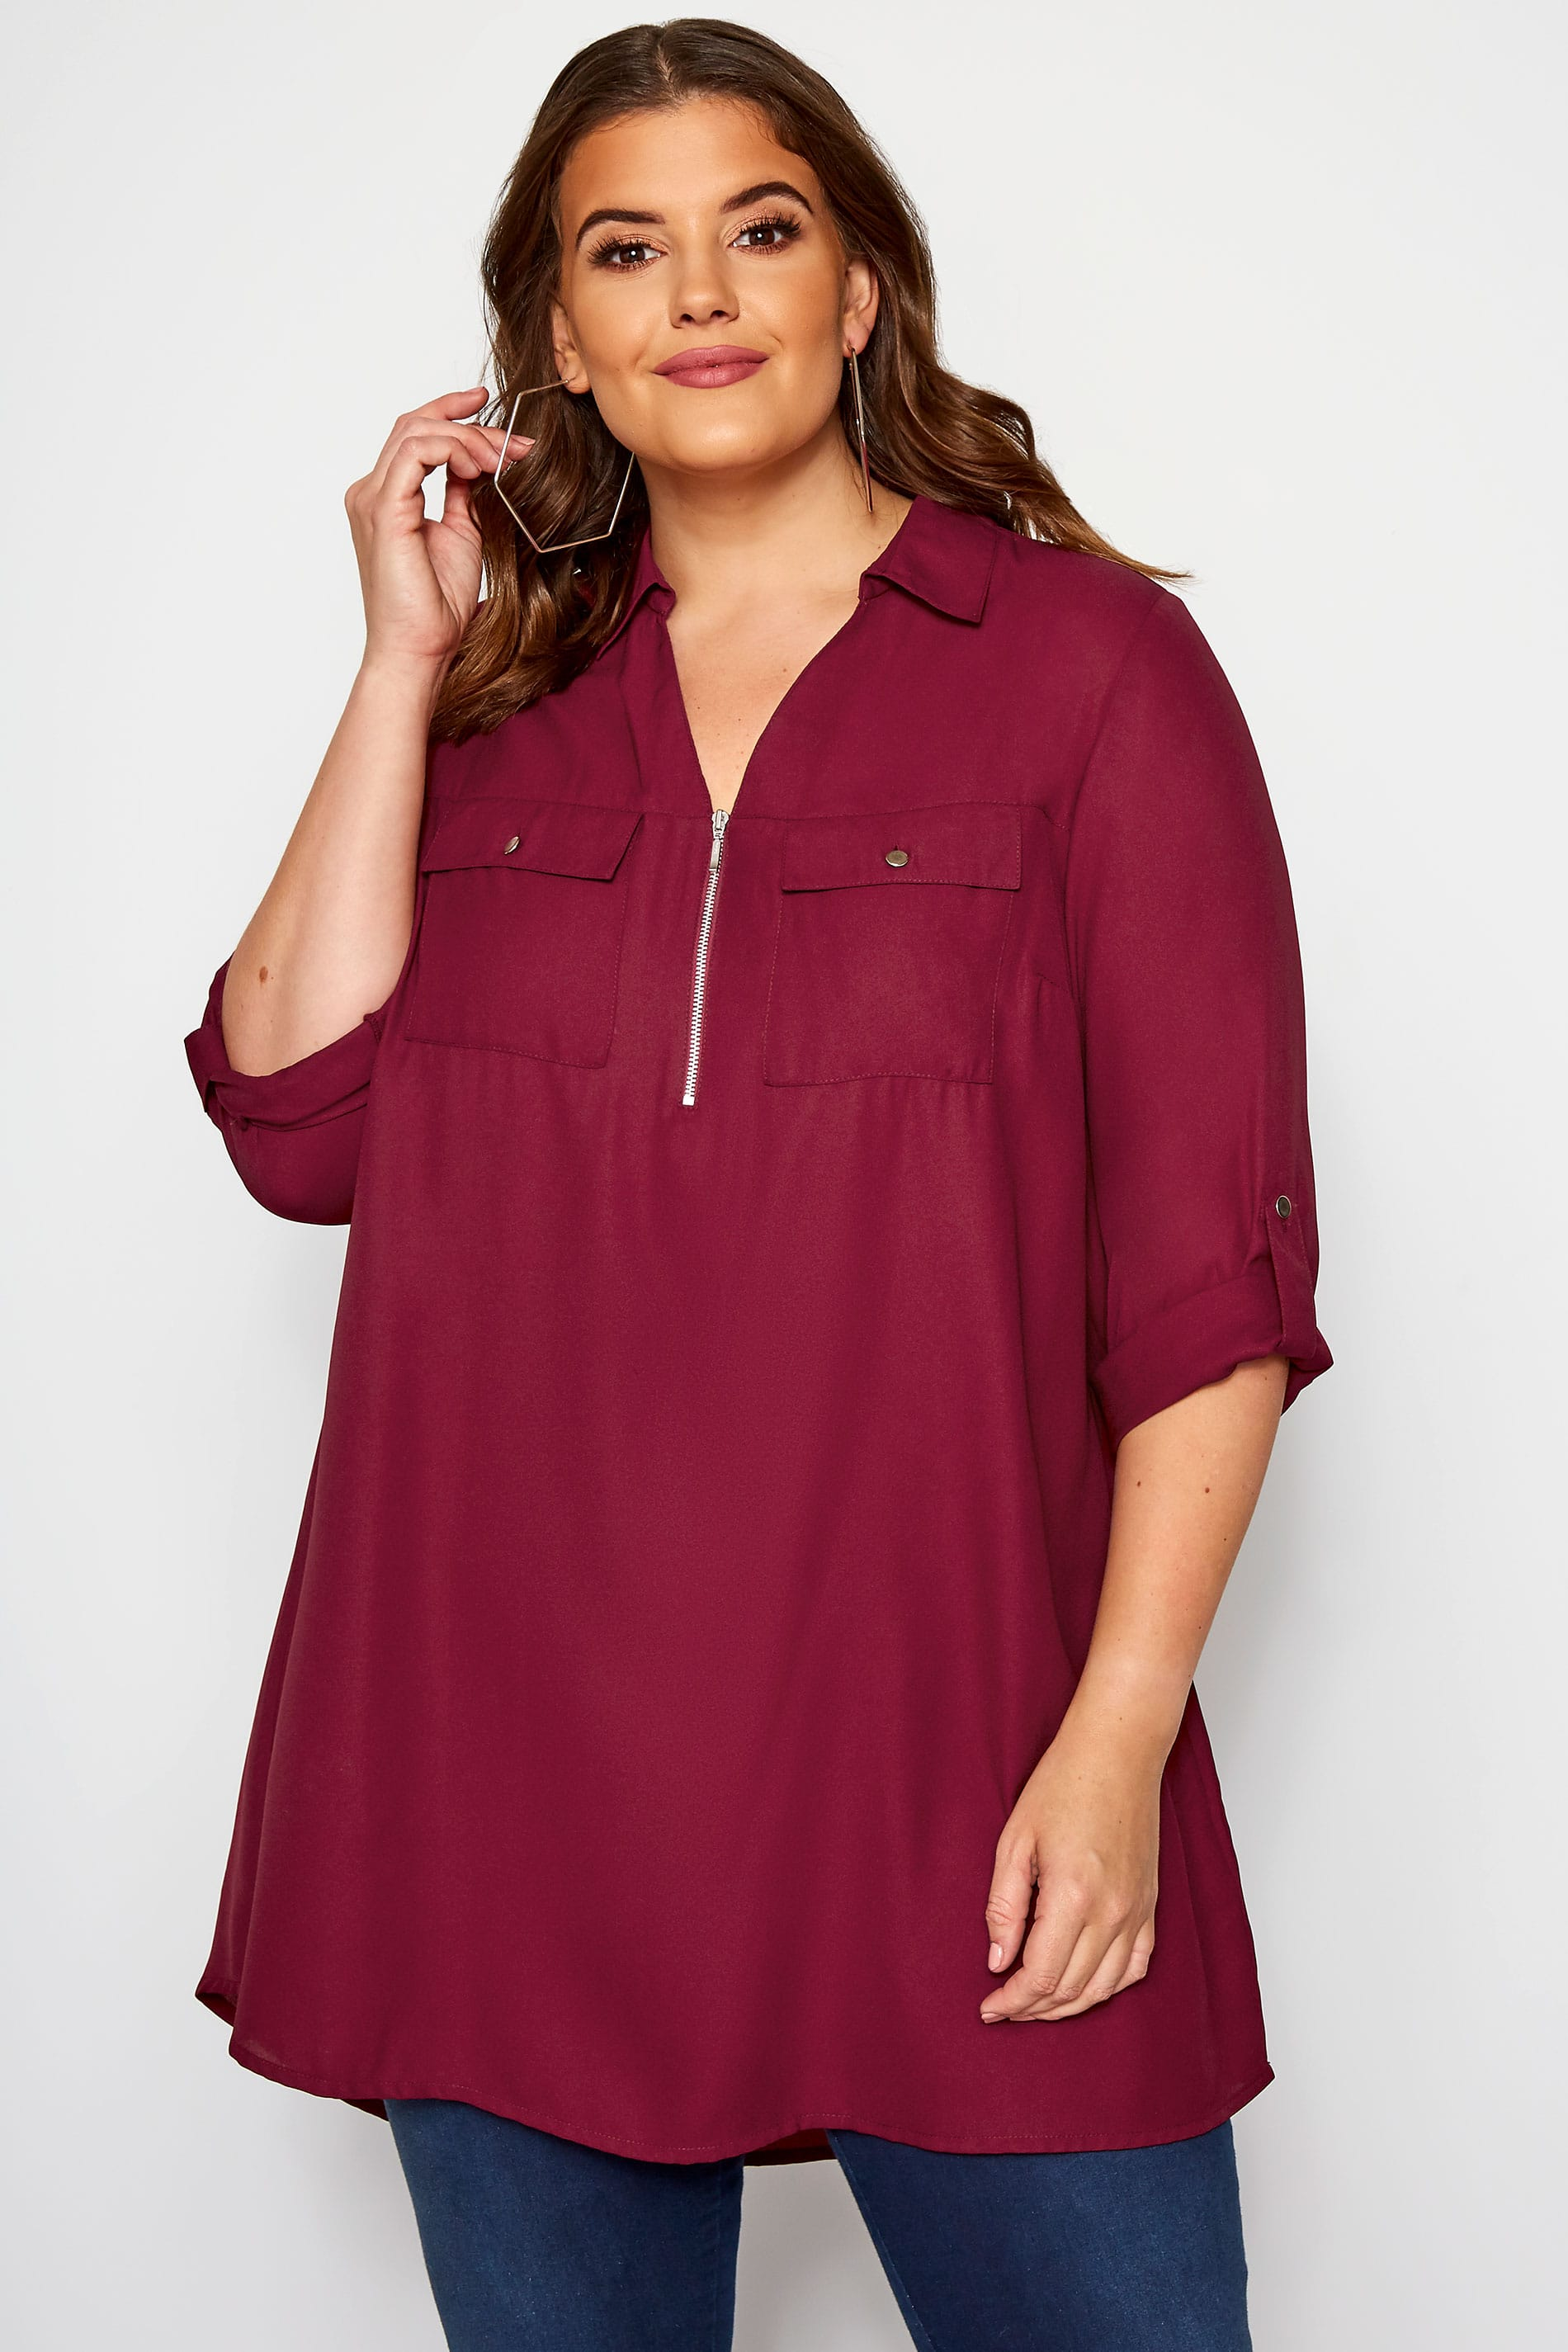 Raspberry Pink Shirt With Zip Front